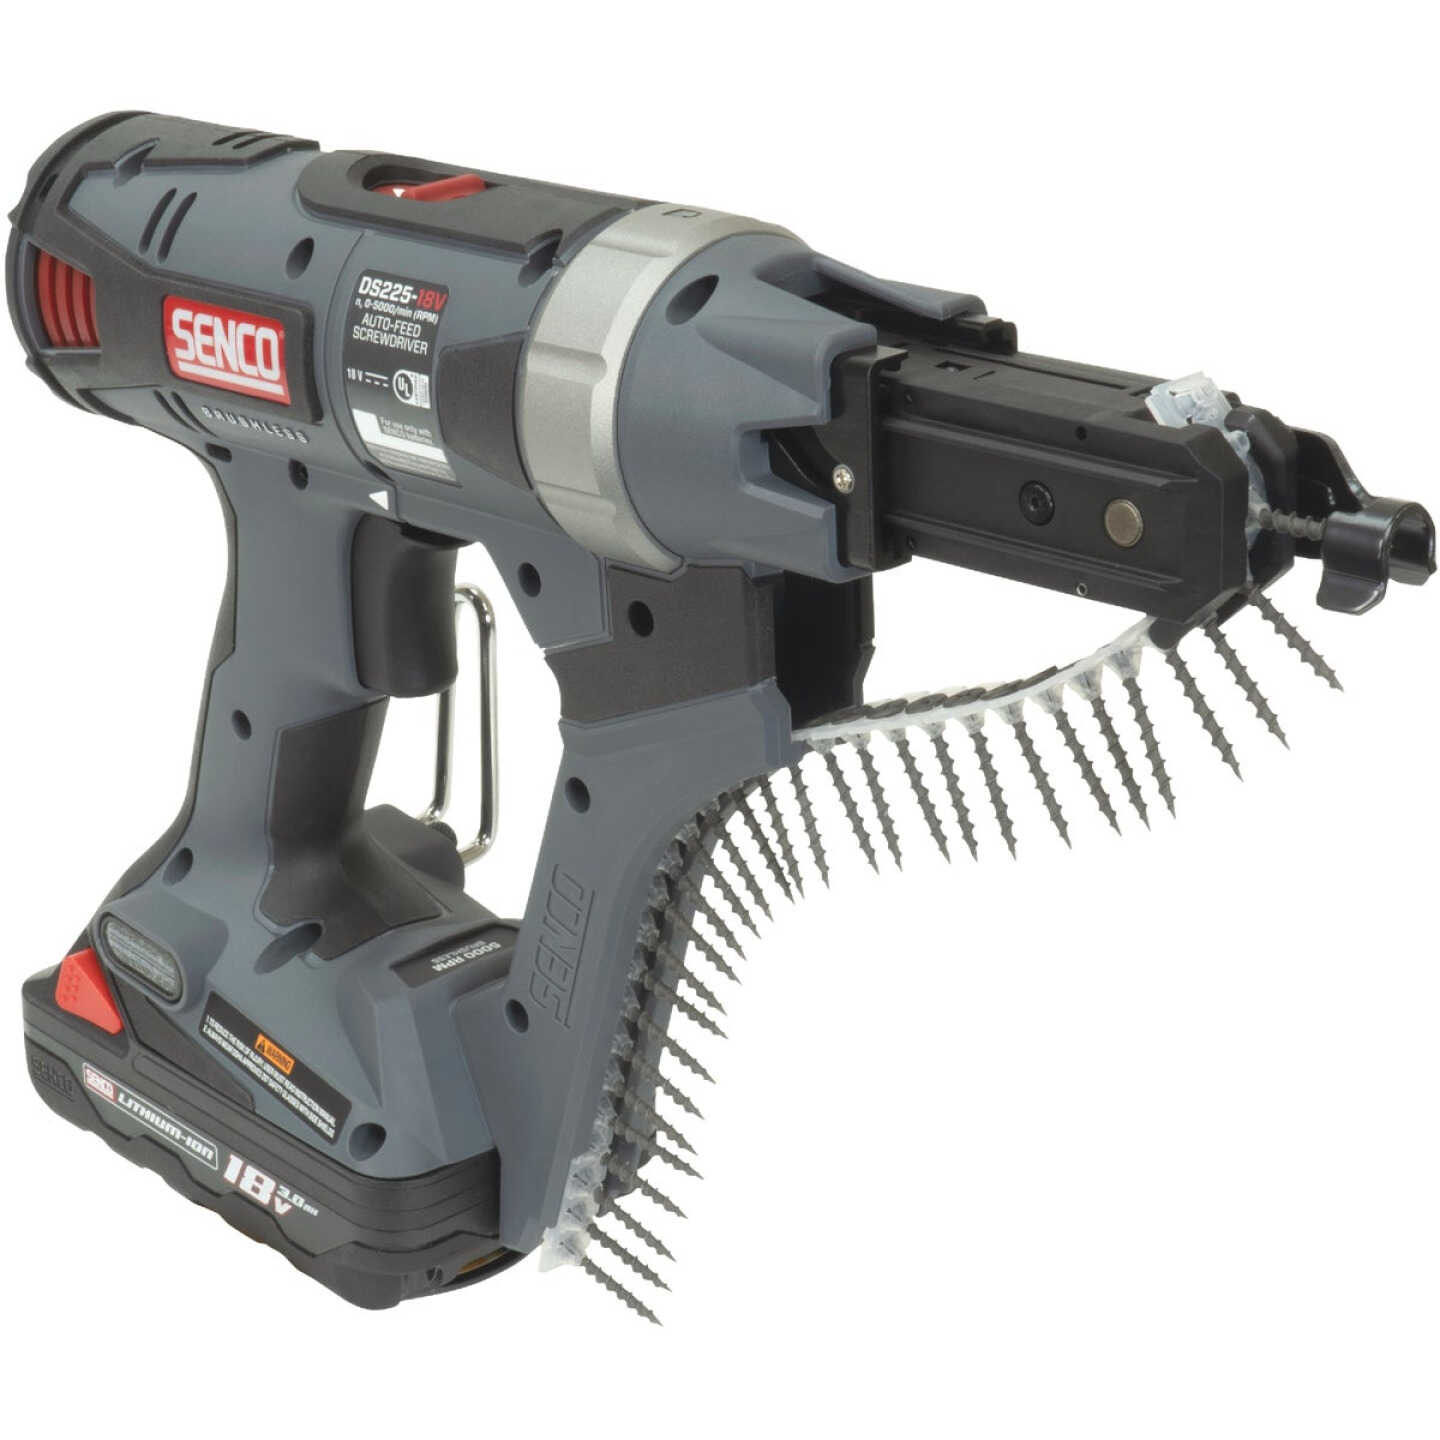 DuraSpin DS225 18 Volt 2 In. Lithium-Ion 5000 RPM Auto-Feed Cordless Screwdriver Image 2